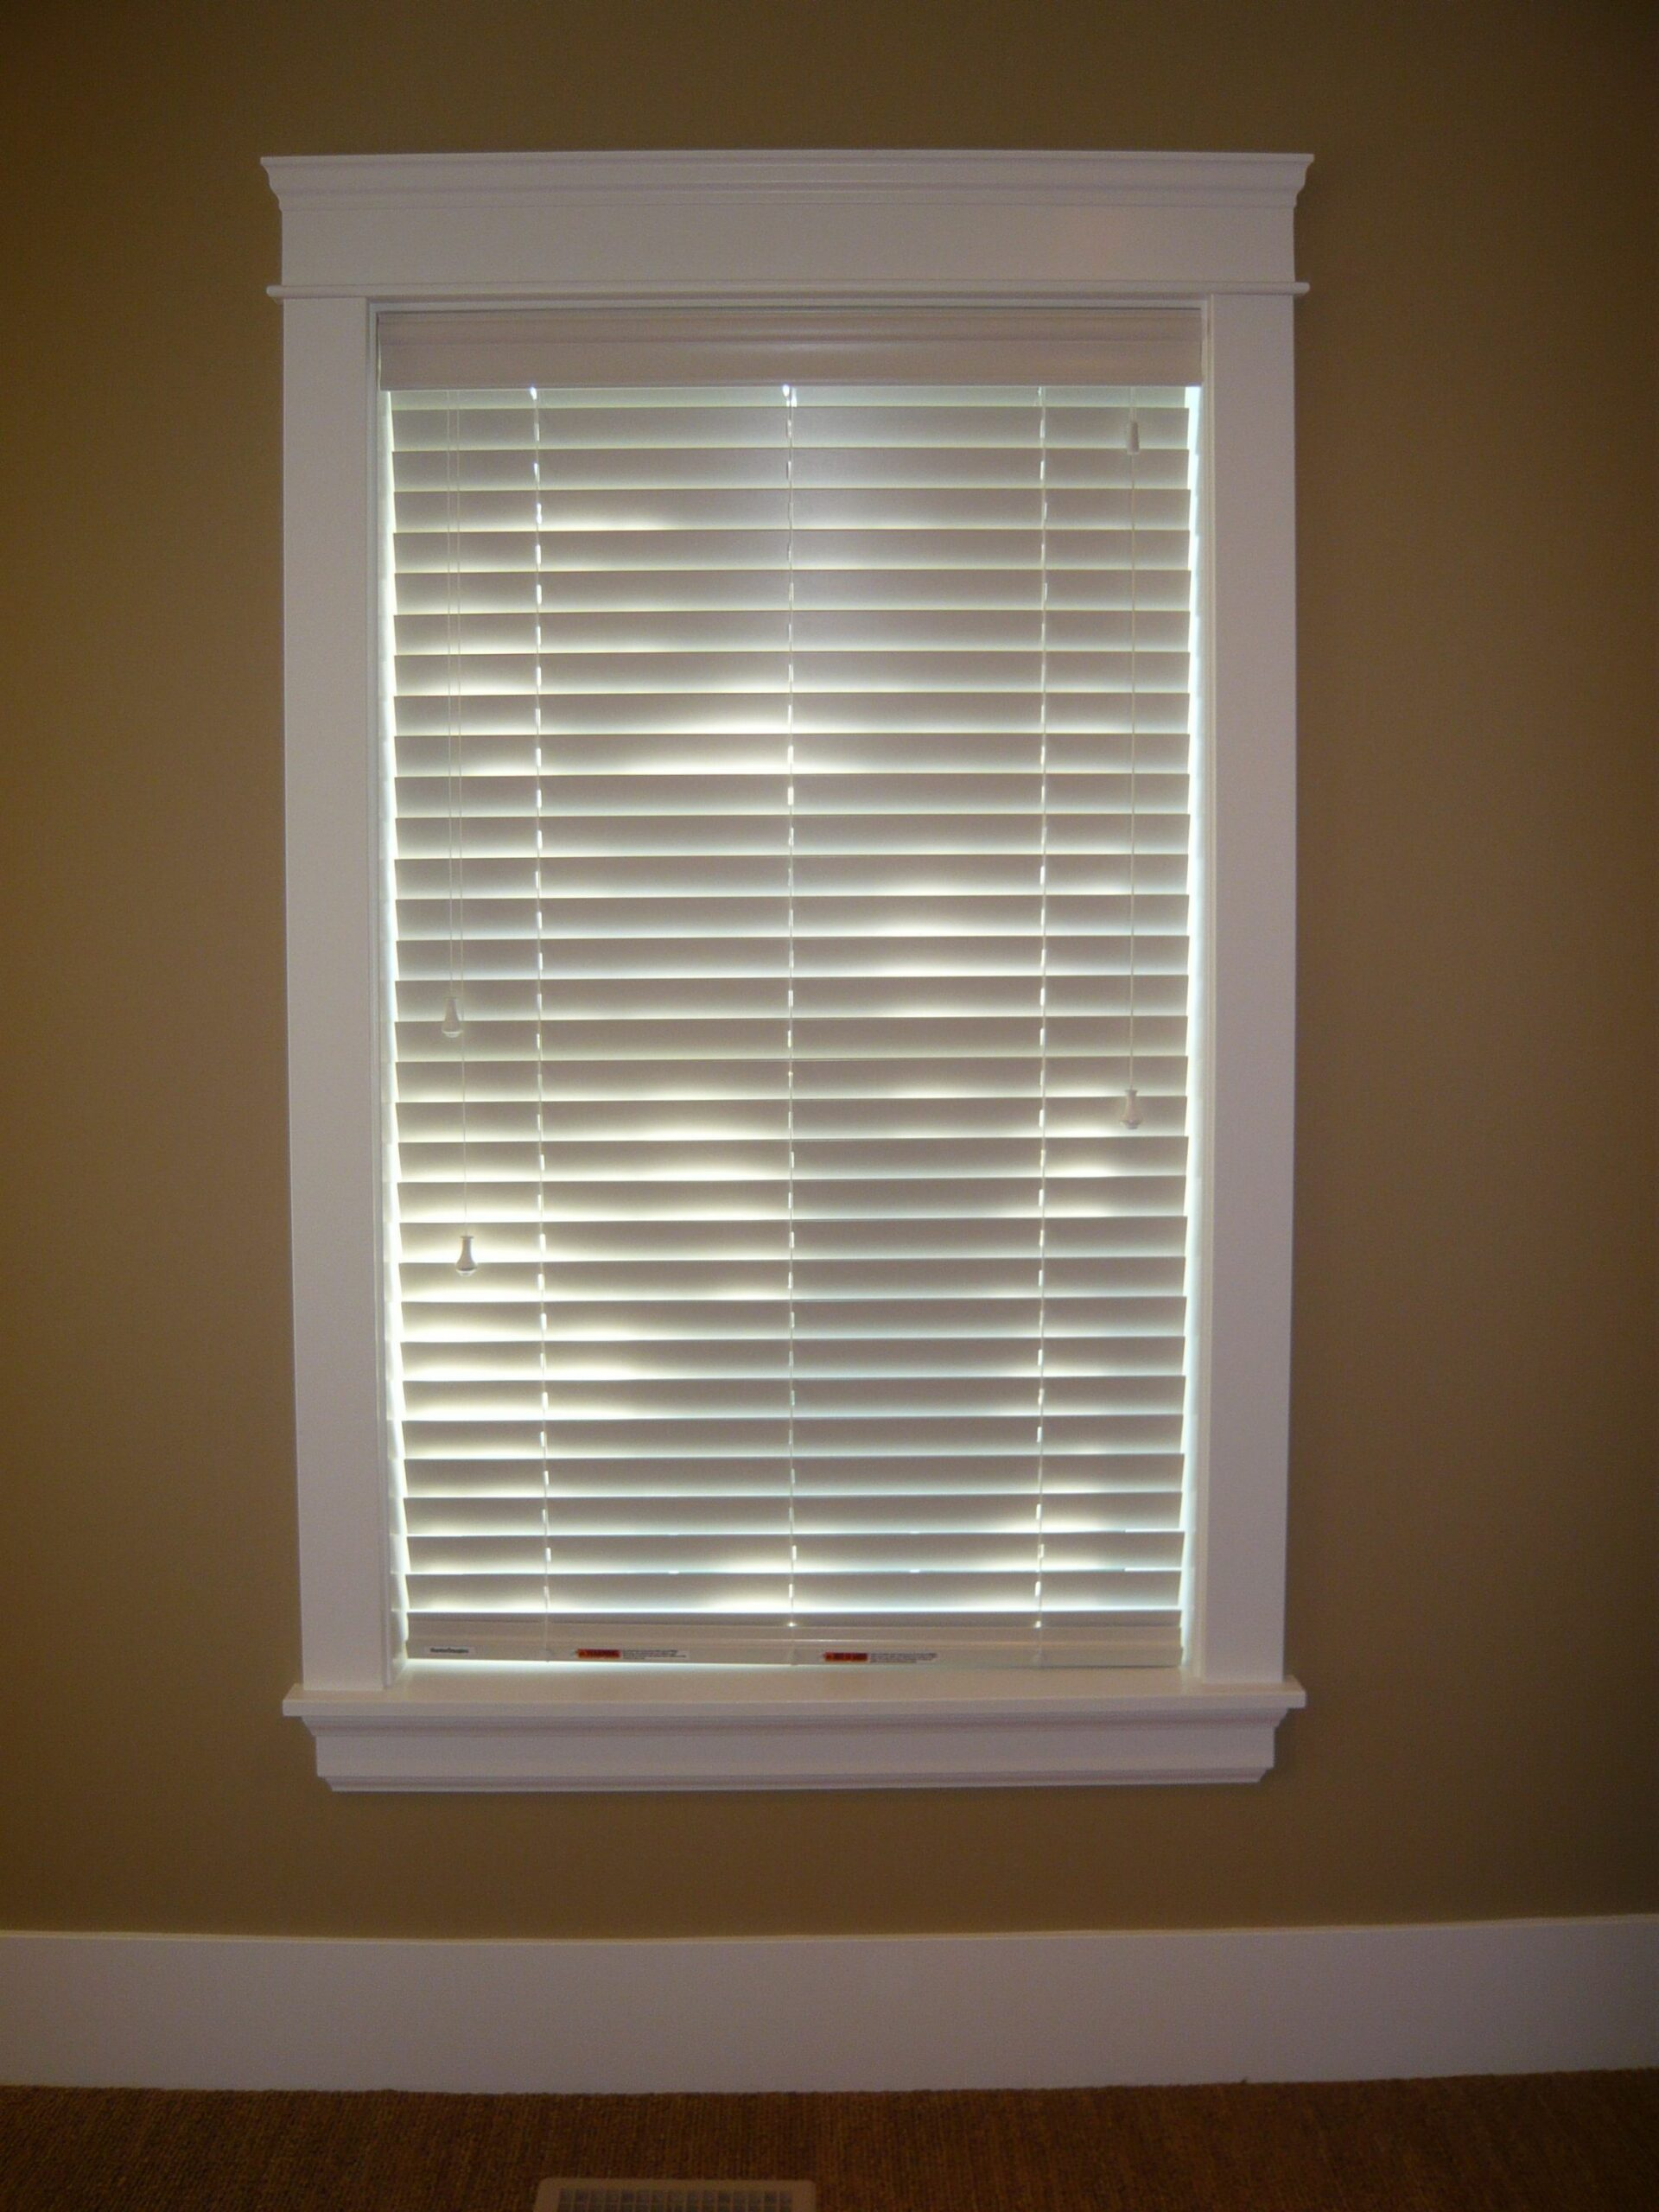 window moulding (With images) | Molding around windows, Interior ...